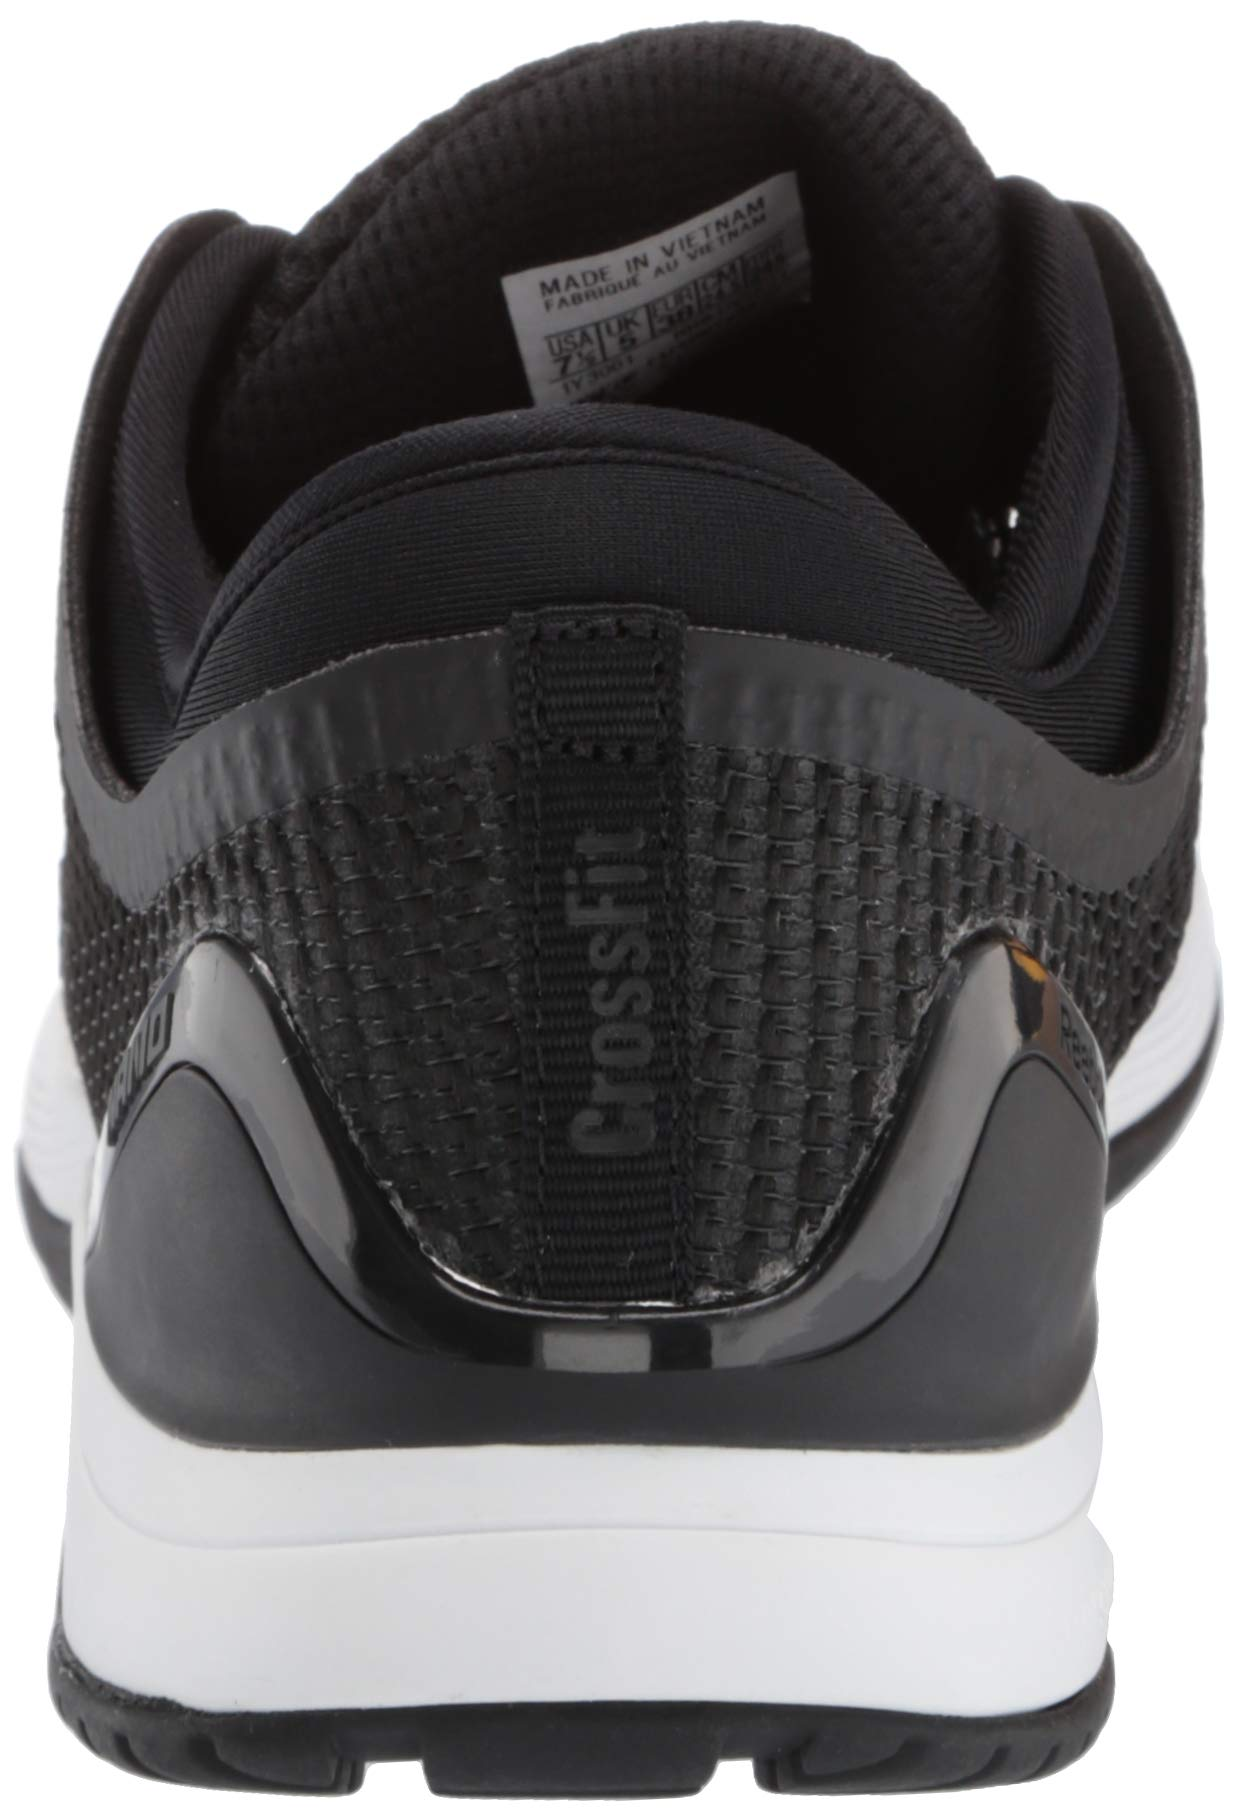 Reebok Women's CROSSFIT Nano 8.0 Flexweave Cross Trainer, Black/White, 5 M US by Reebok (Image #2)